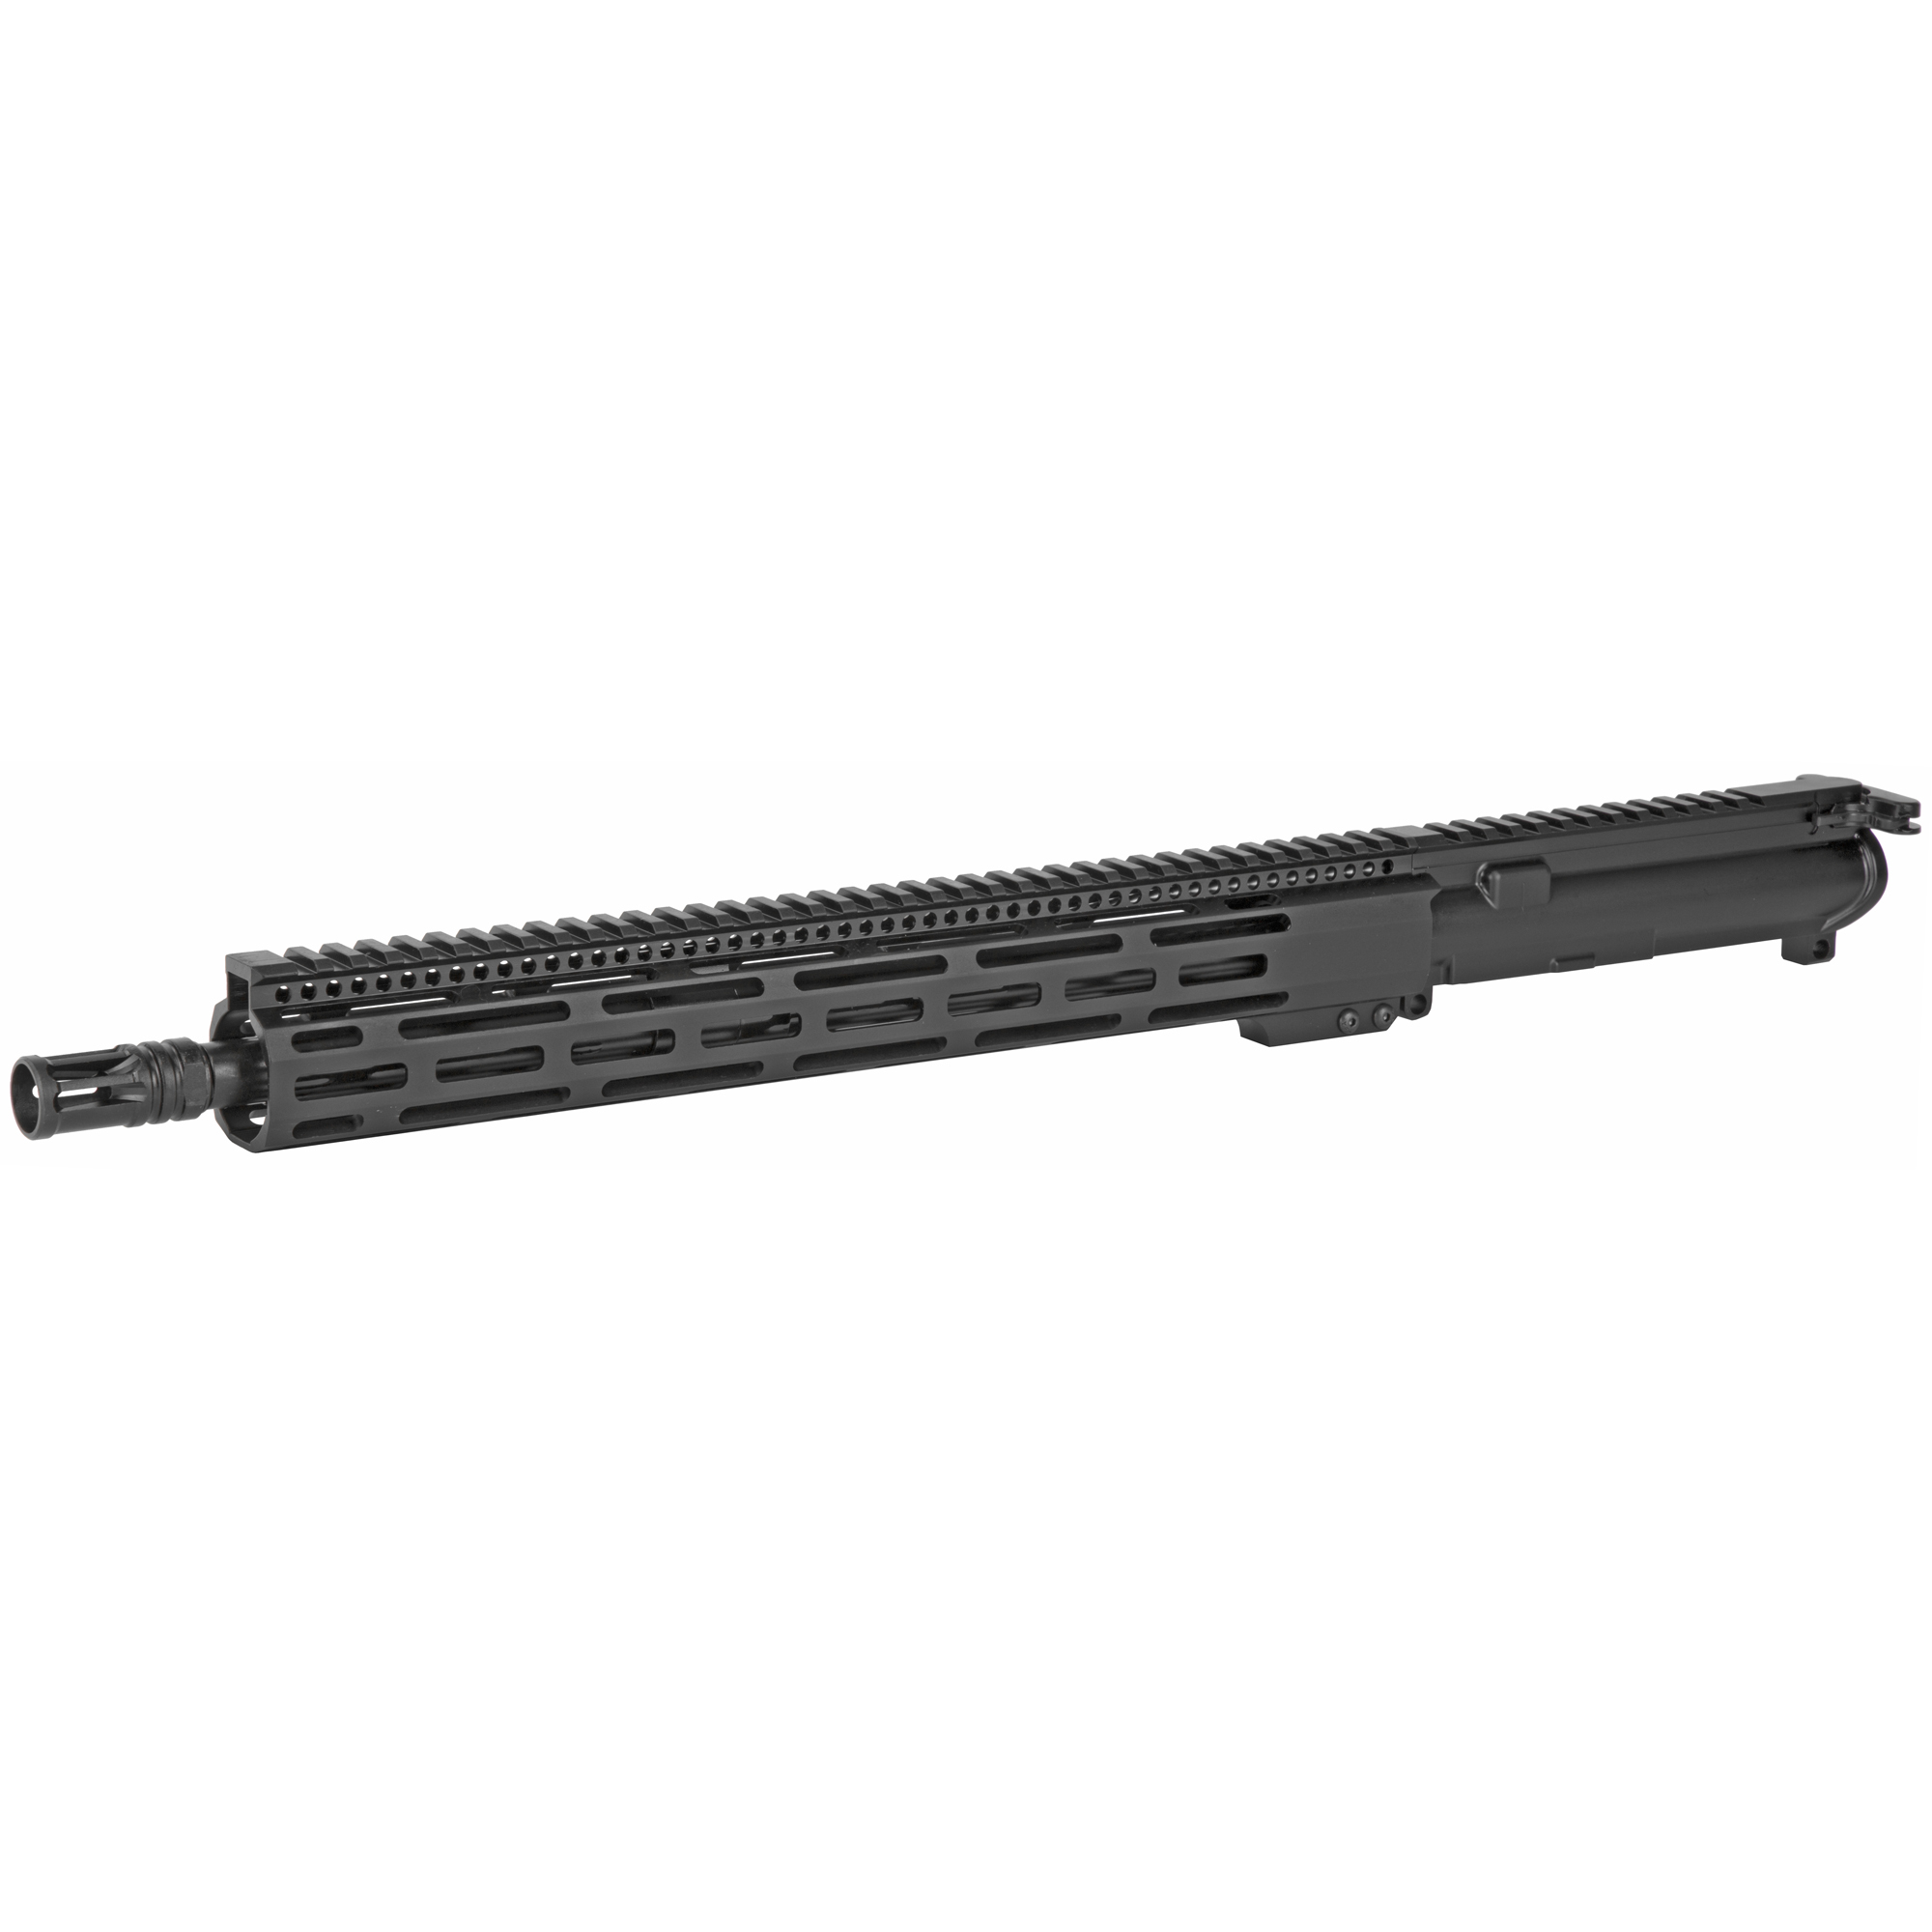 """the Radical Firearms 16"""" Socom profile 5.56mm is a complete MIL-STD upper ready to drop on any MIL-STD lower Receiver. Perfect for the novice or advanced shooter wanting to finish out that build and hit the range. Built with a 15"""" FCR free float rail system for increased accuracy and keeping your hands cool. No matter what your style of shooting is"""" Radical Firearms has you covered."""